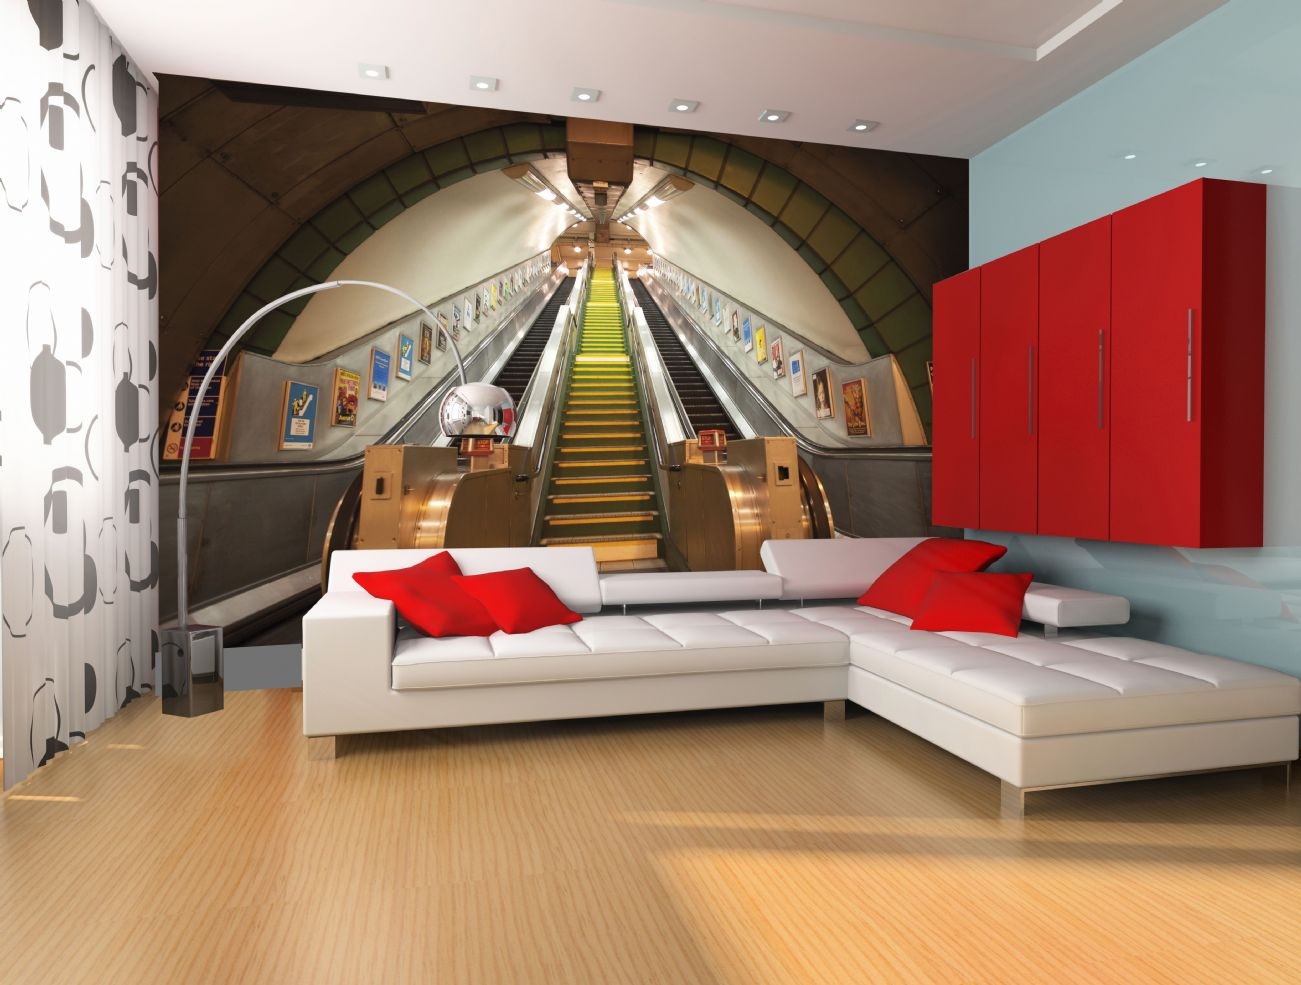 Giant wallpaper wall subway train station london for 3d interior wall murals